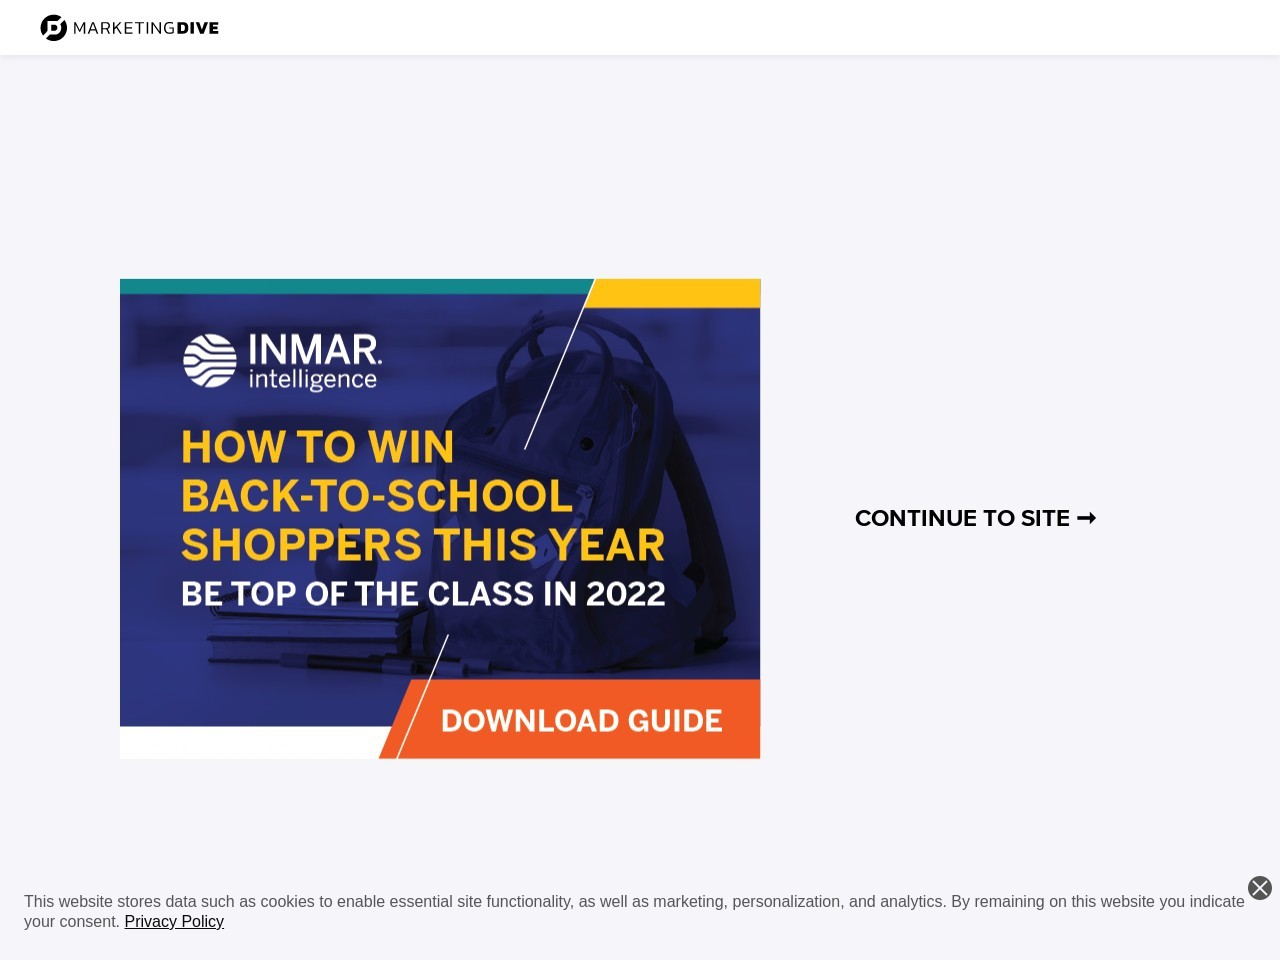 10 digital marketing trends to watch in 2016 and beyond